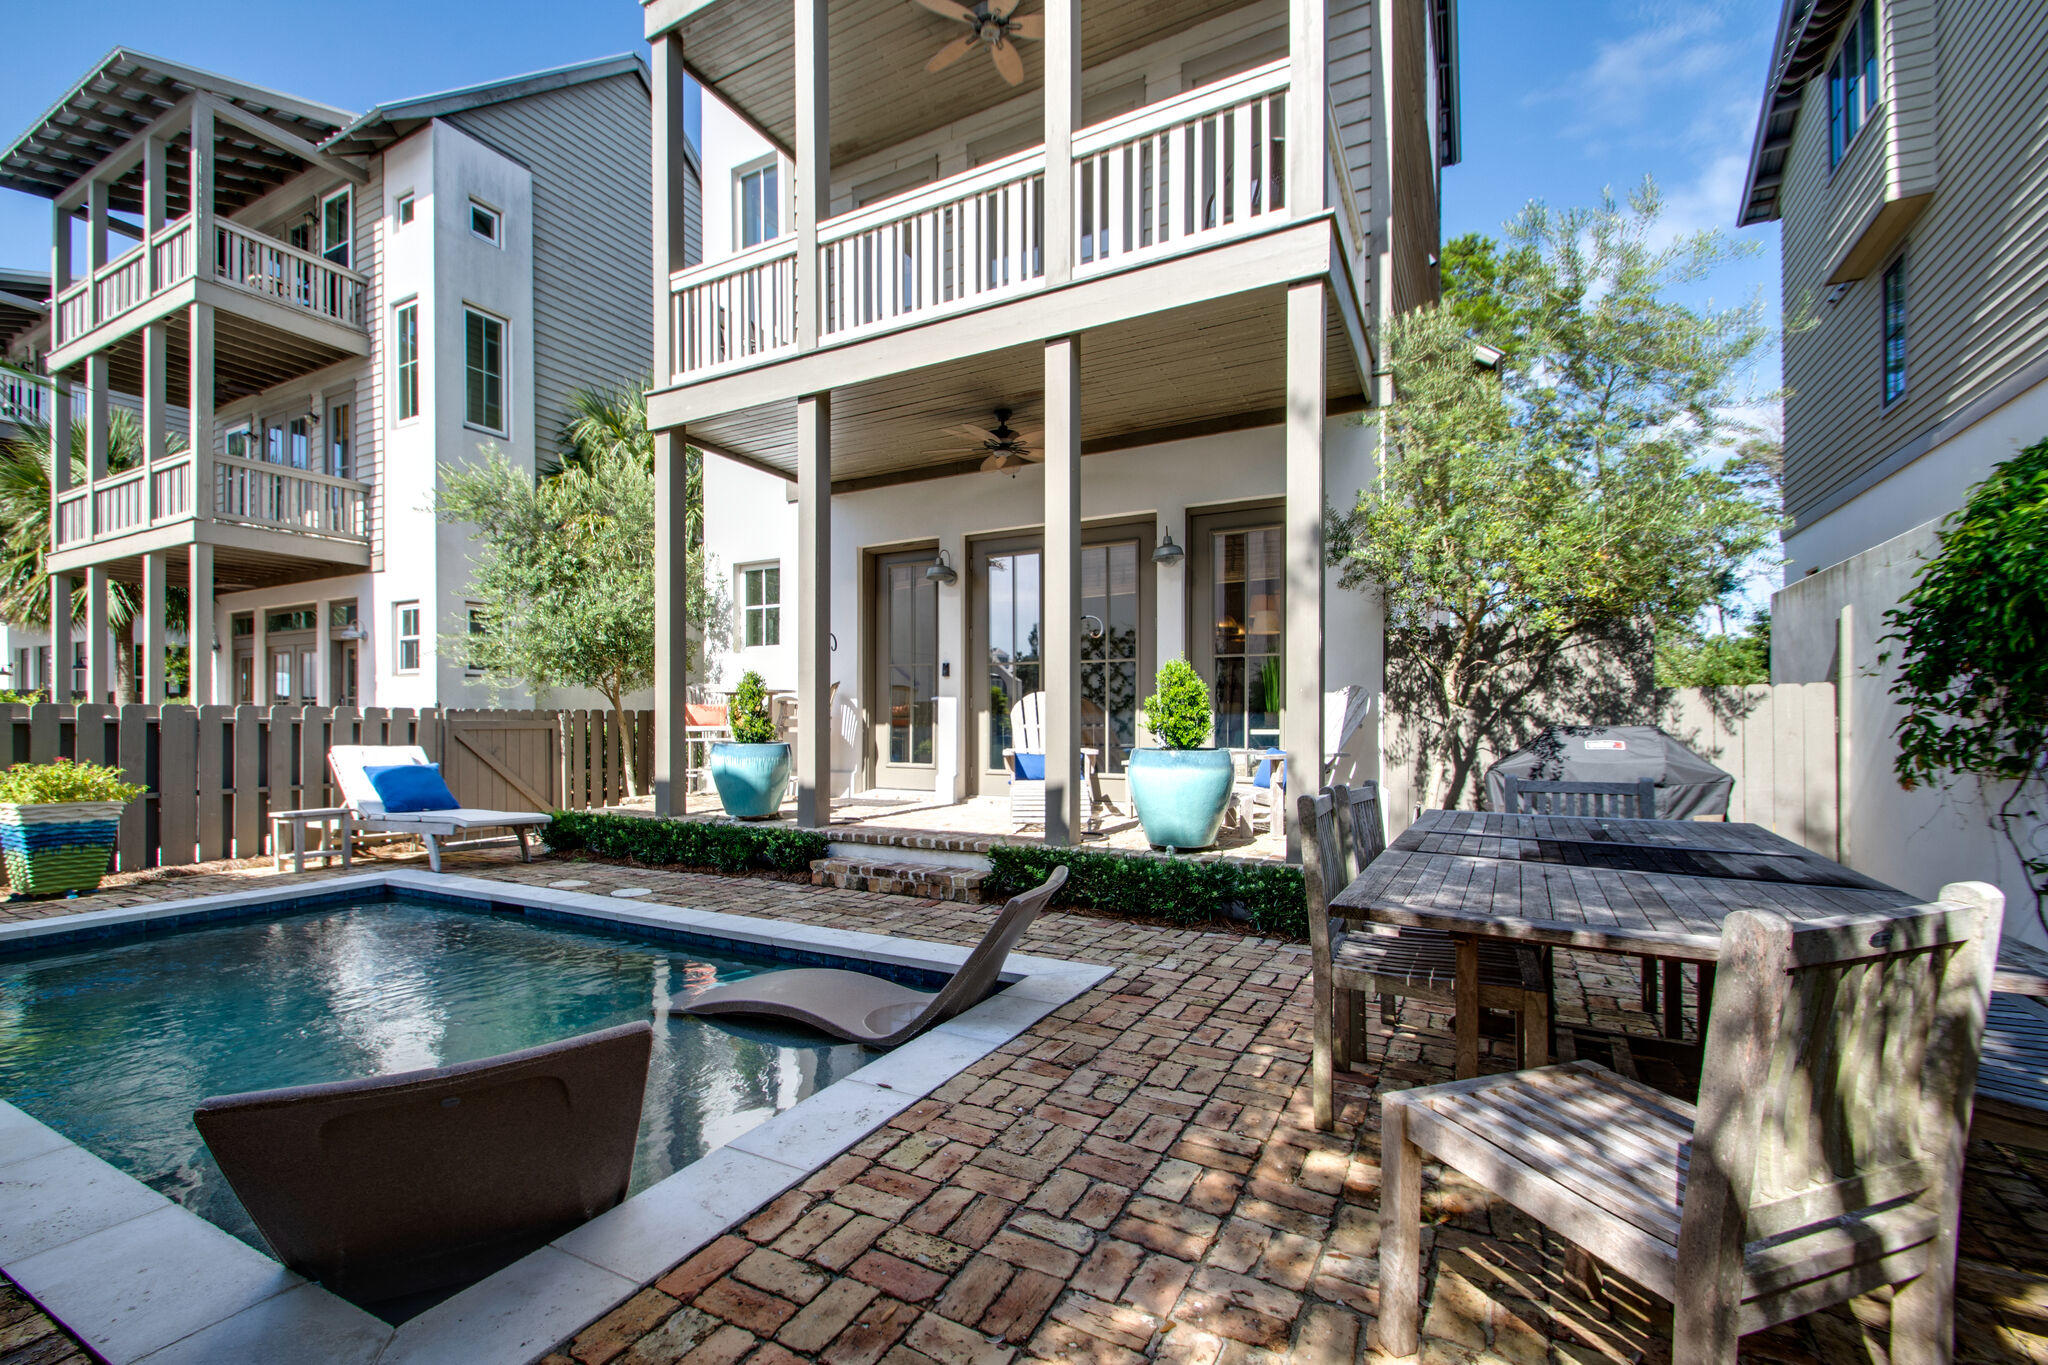 Great location next to Rosemary Beach with easy walk to beach, shops and restaurants. Main house off